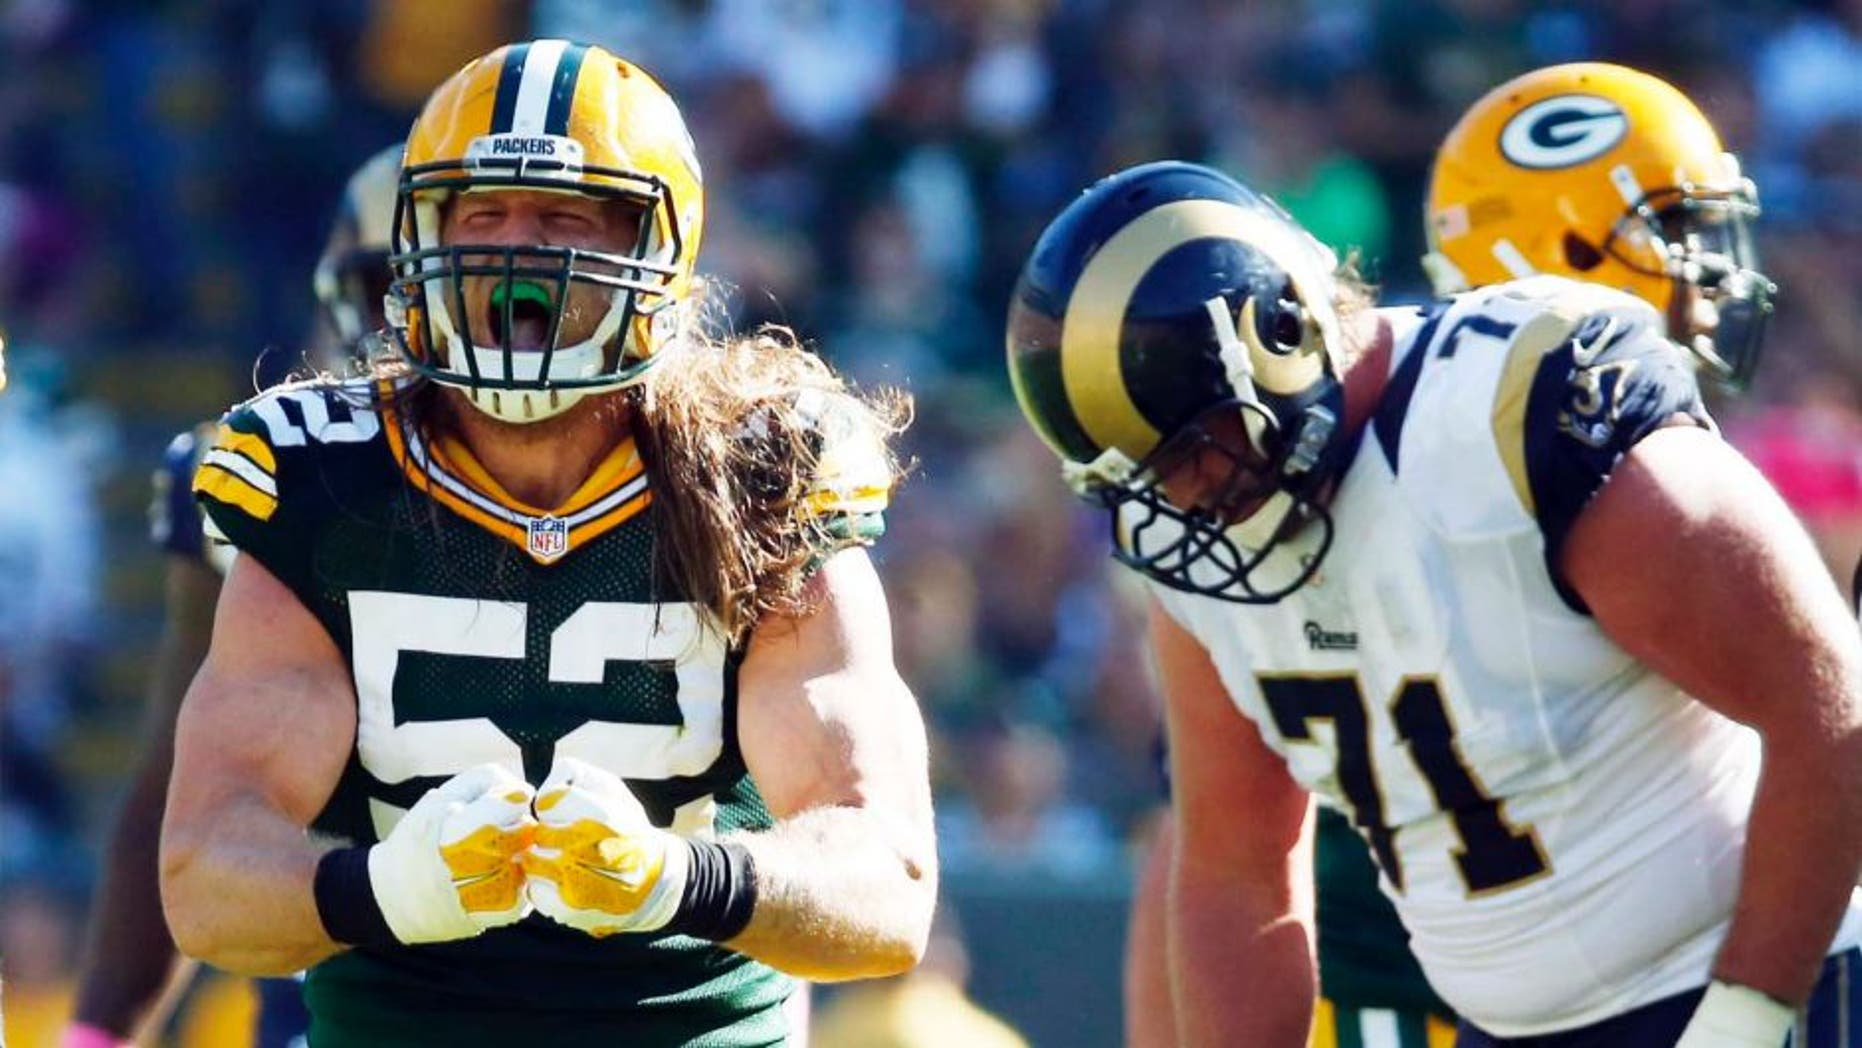 Sunday, Oct. 11: The Green Bay Packers' Clay Matthews celebrates after sacking St. Louis Rams quarterback Nick Foles during the second half in Green Bay, Wis.